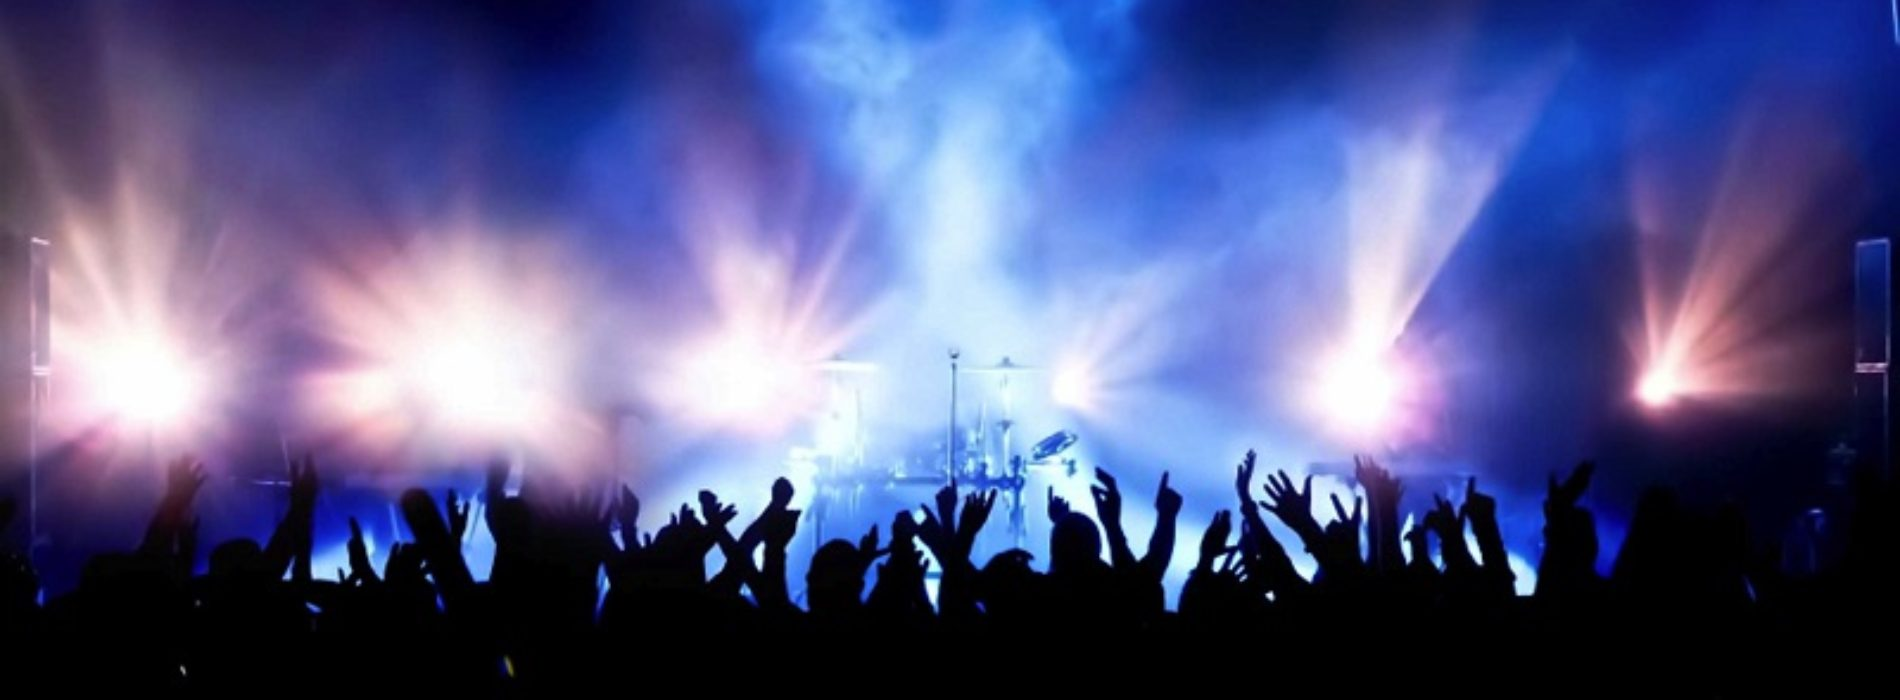 Don't let your wheelchair get in the way of experiencing live music